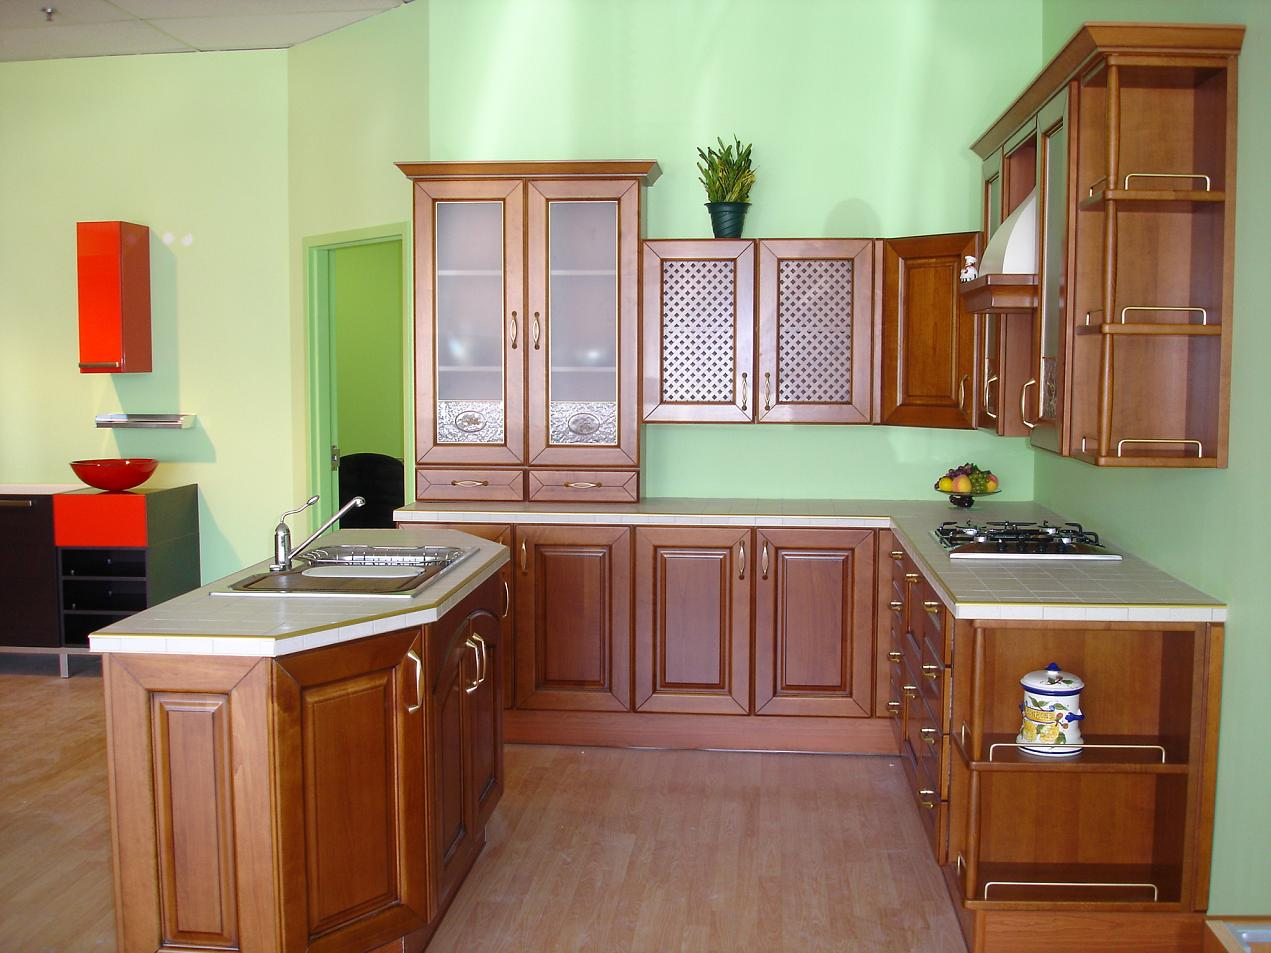 Italian kitchen designs ideas pictures photos Kitchen cabinet designs